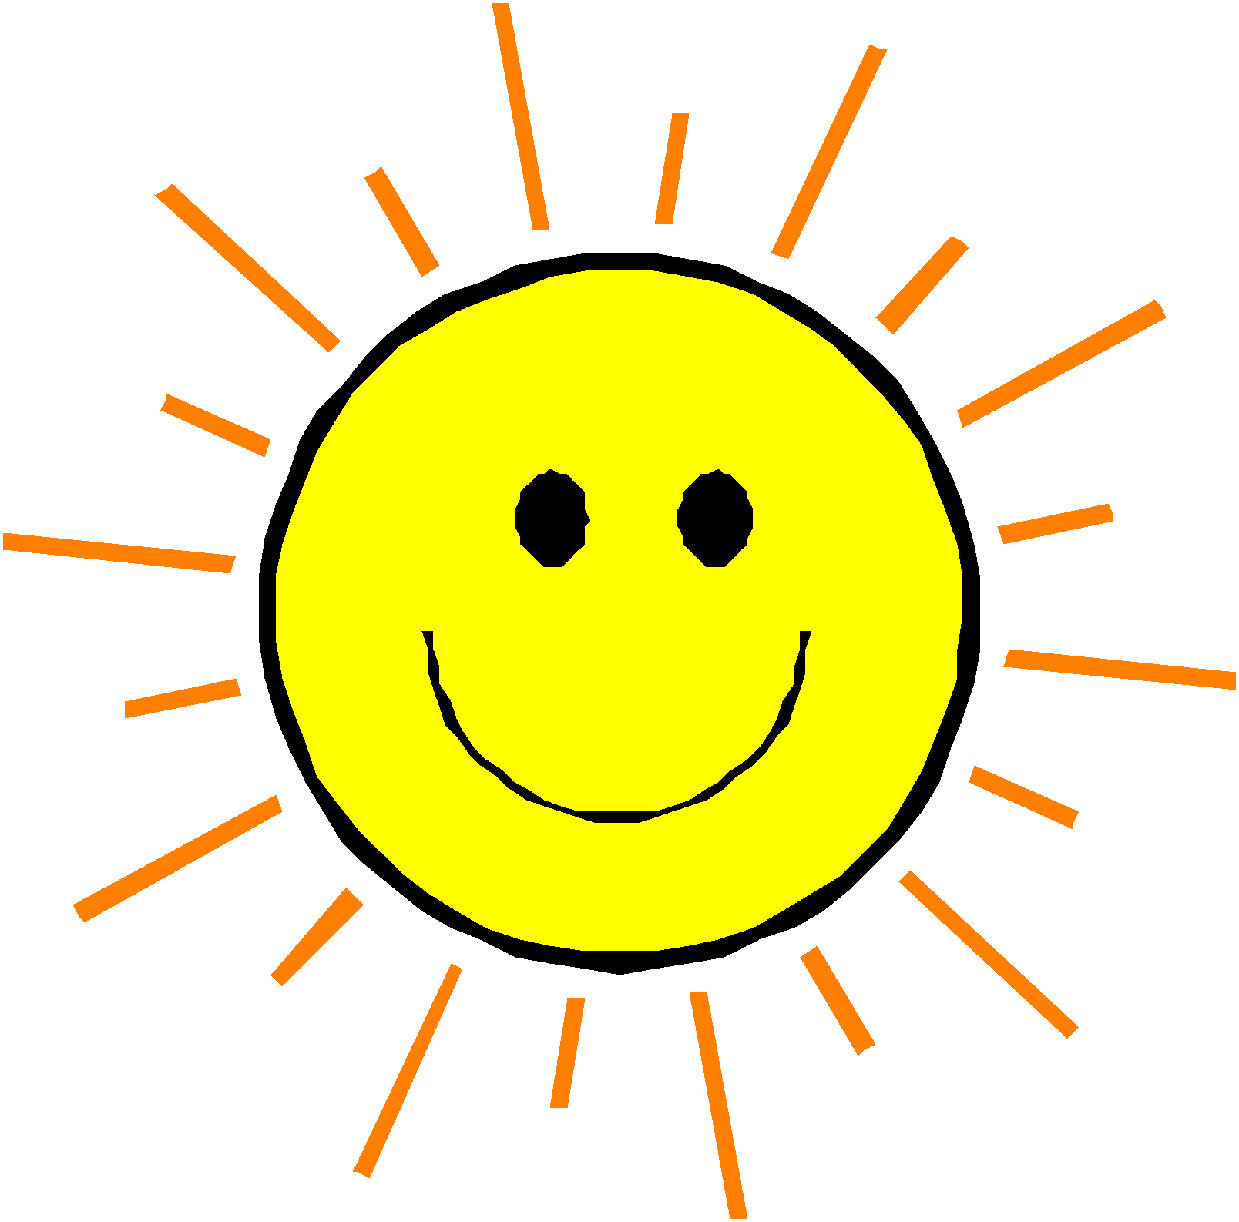 hight resolution of sunshine free sun clipart public domain sun clip art images and 4 6